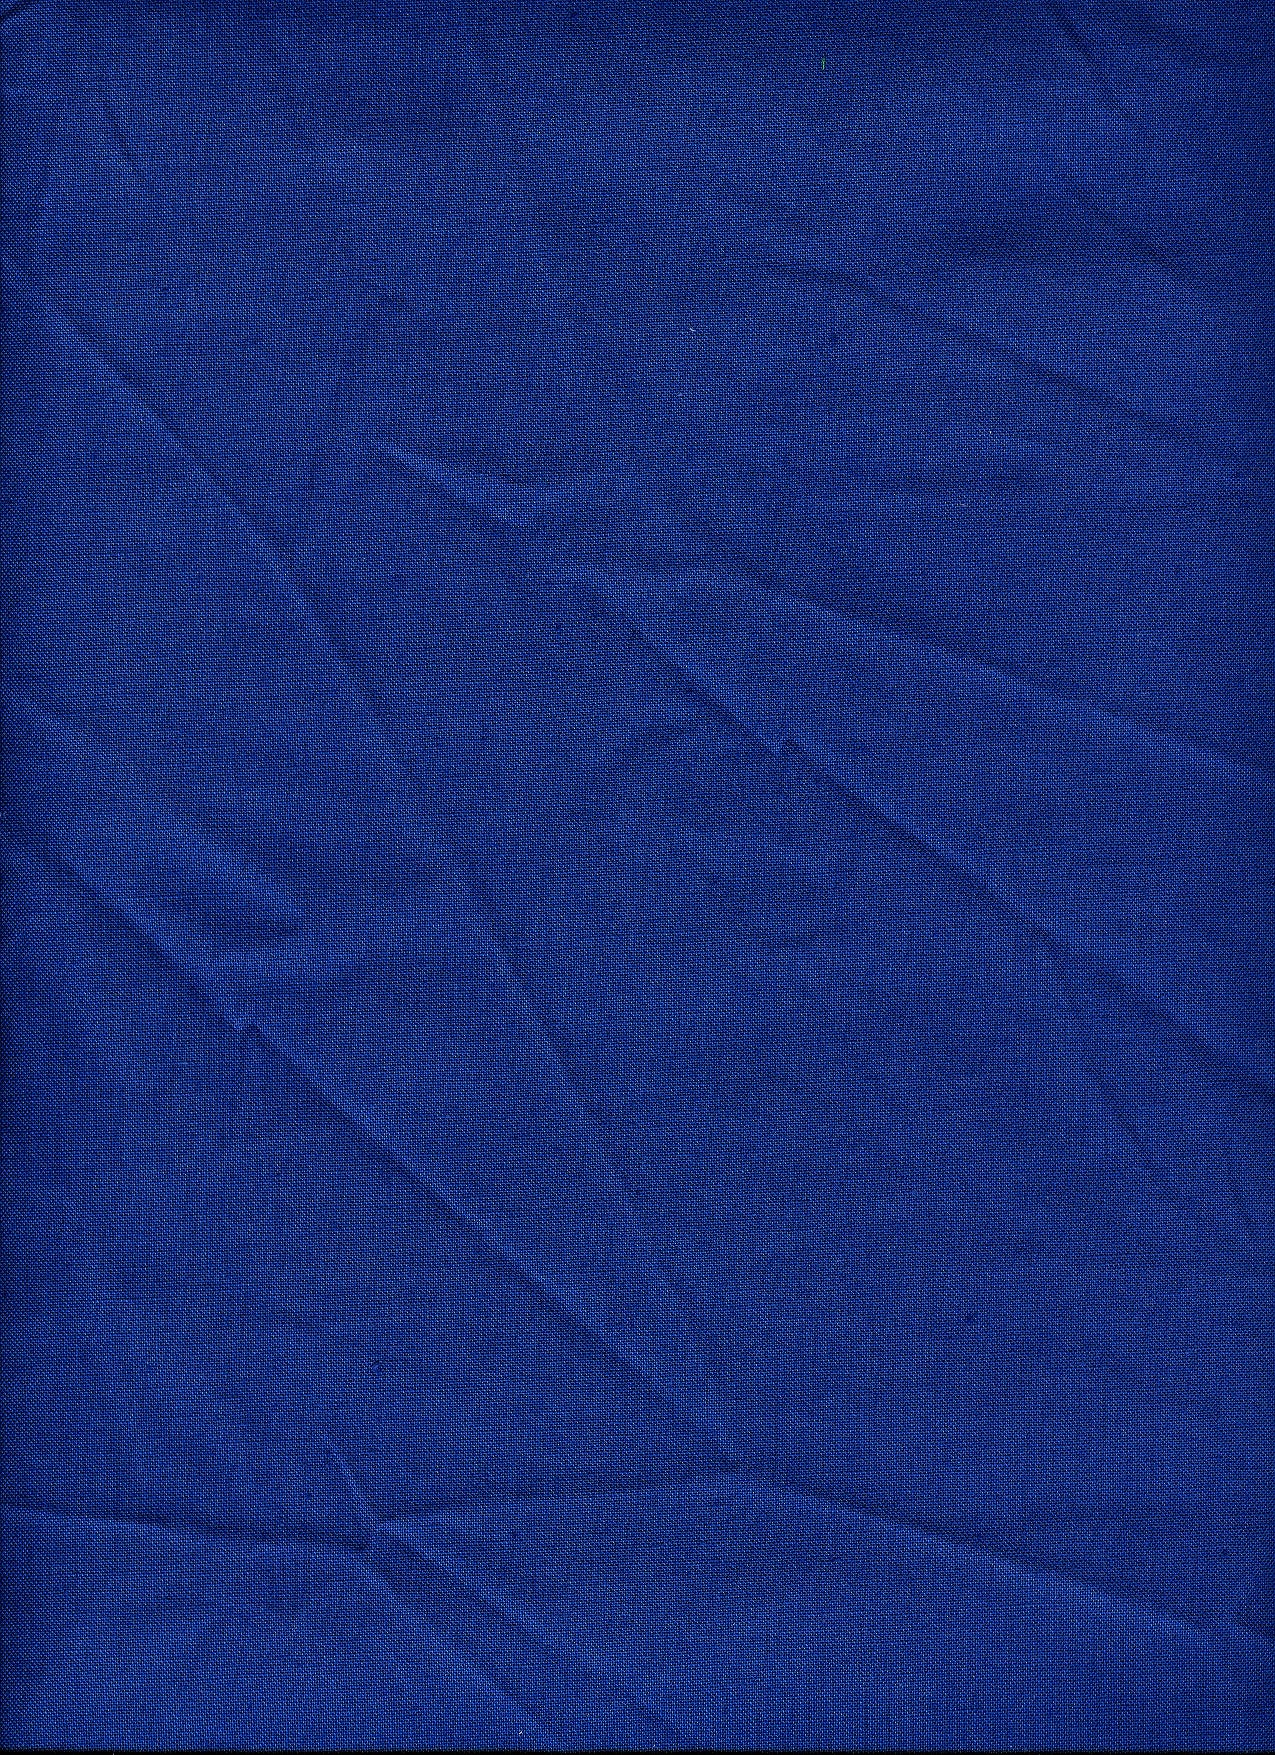 ProMaster Solid Backdrop - 10'x12' - Chroma Key Blue